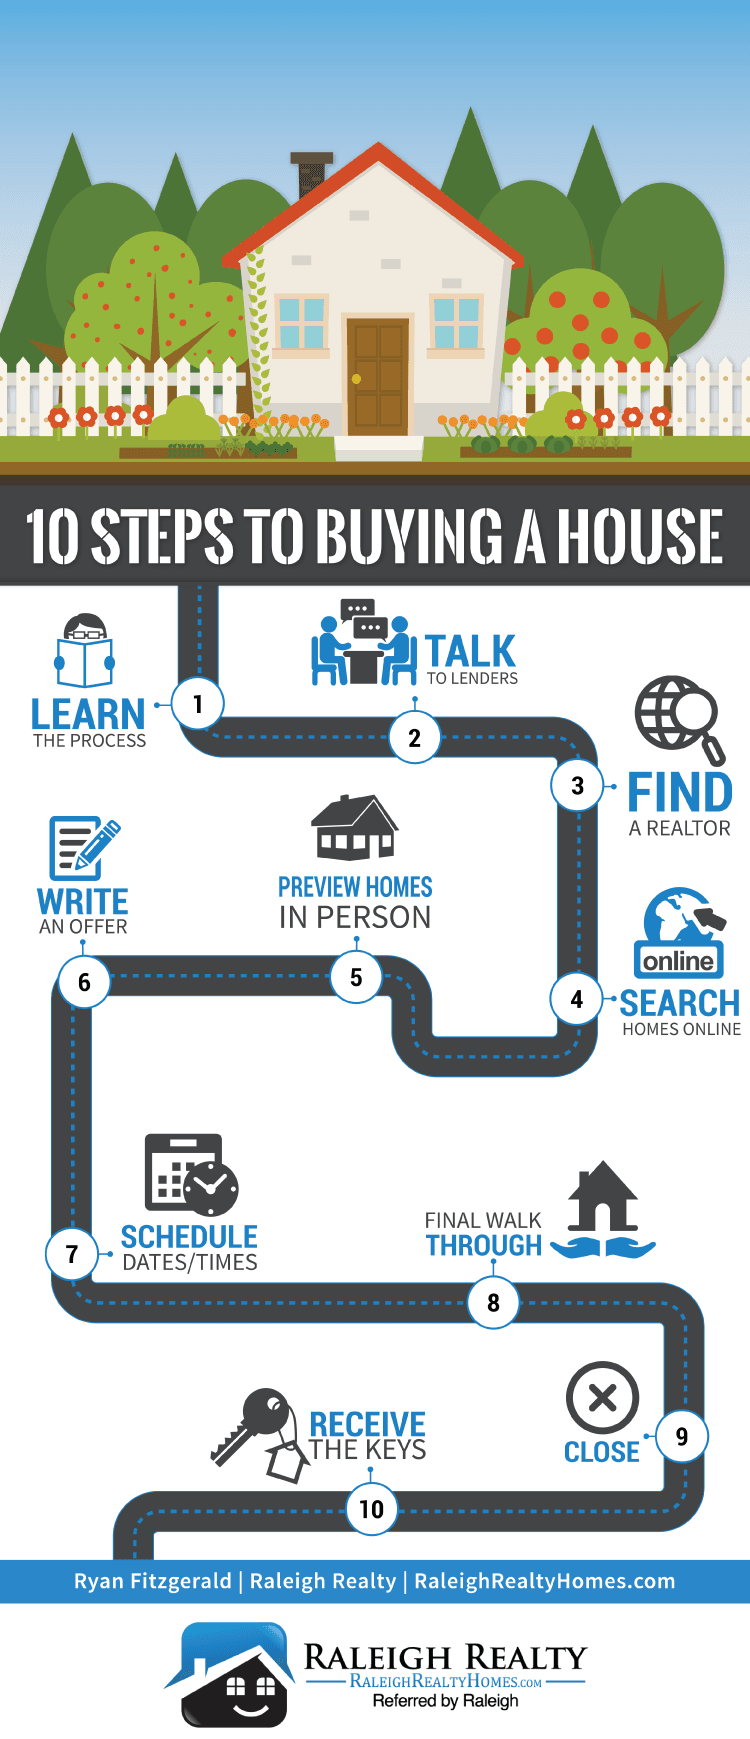 10 Steps to Buying a House in Raleigh, NC